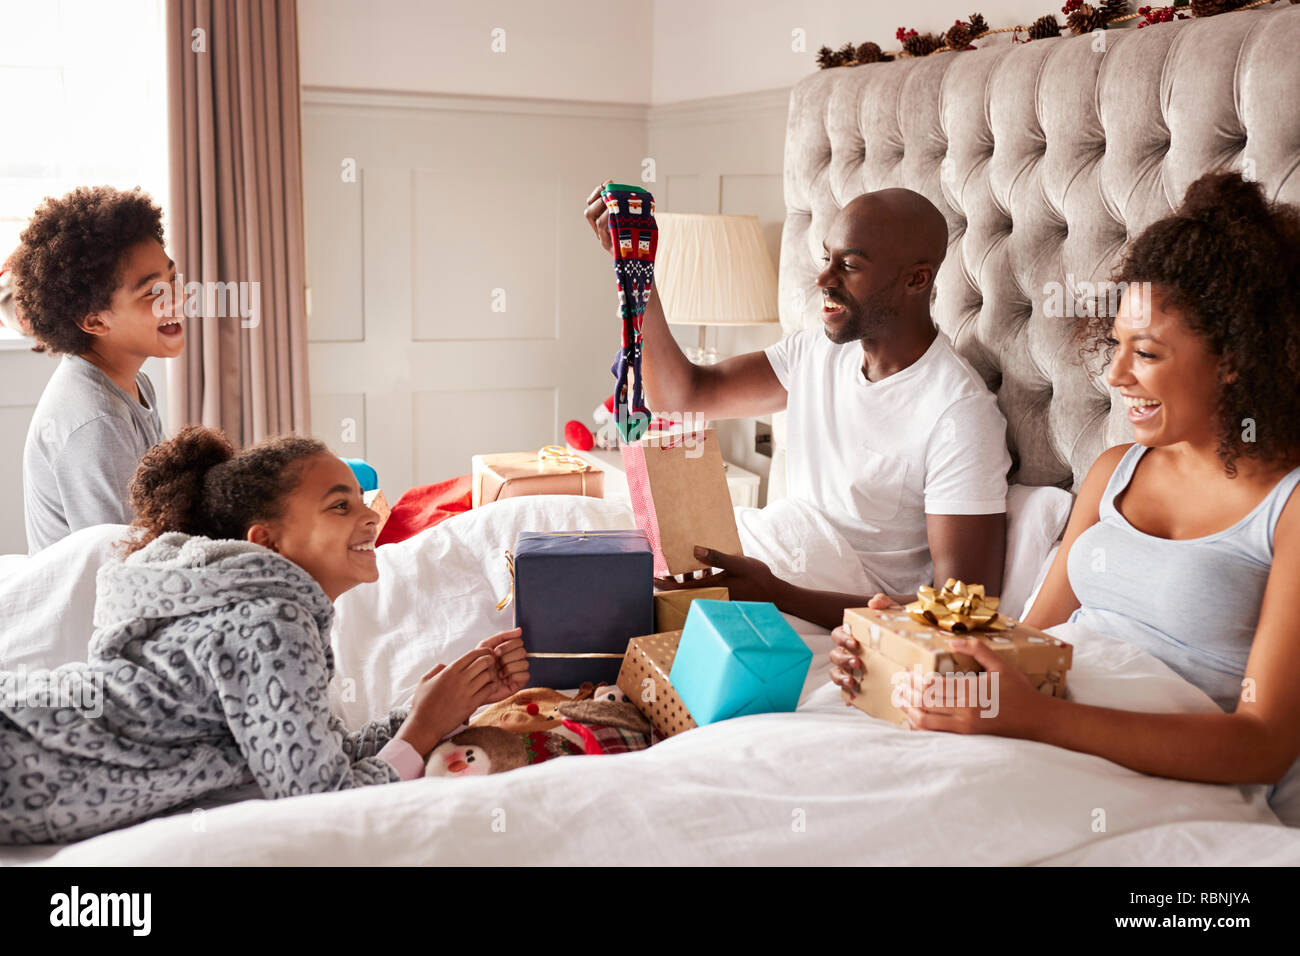 Dad sitting up in bed opening a gift on Christmas morning watched by his family, close up - Stock Image